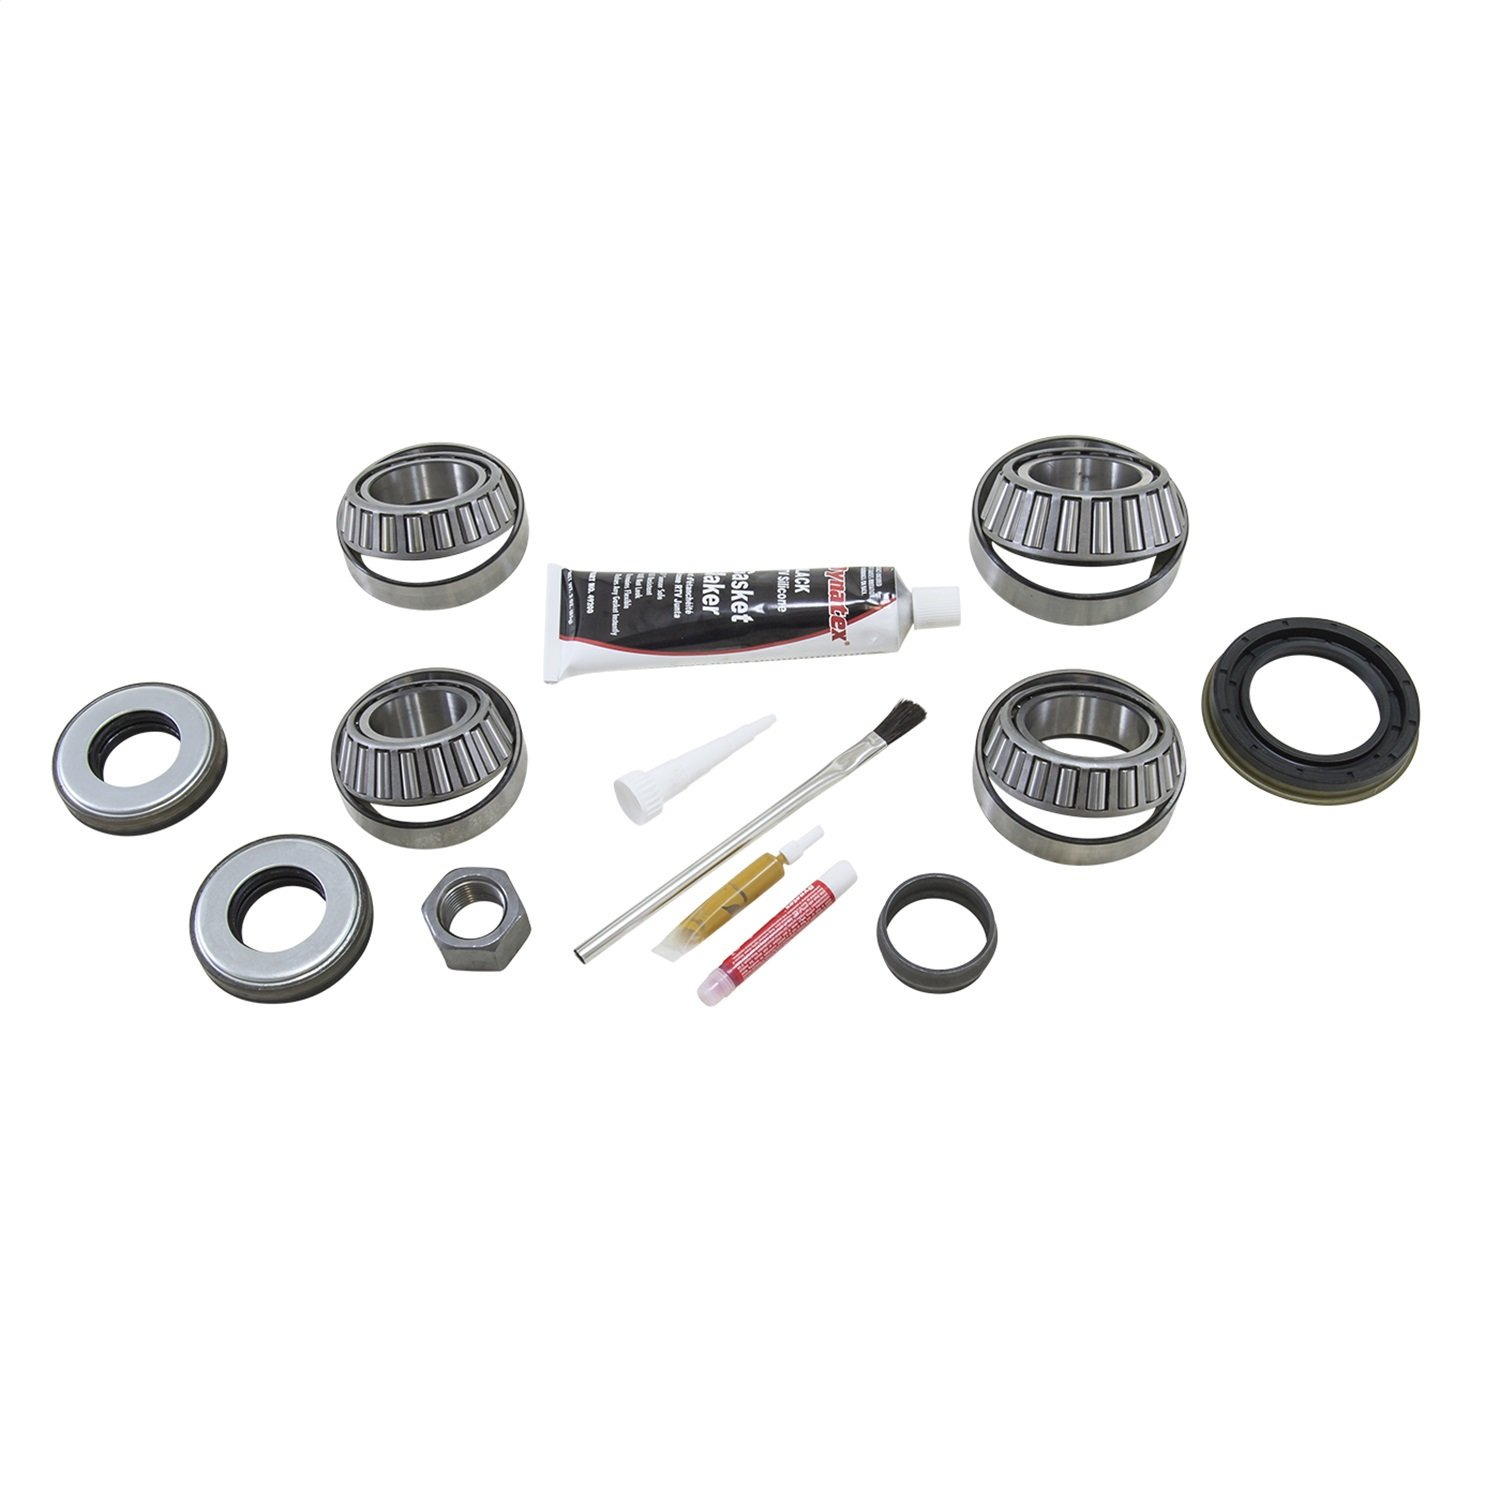 USA Standard Gear (ZBKGM9.25IFS-A) Bearing Kit for GM 9.25 IFS Front Differential